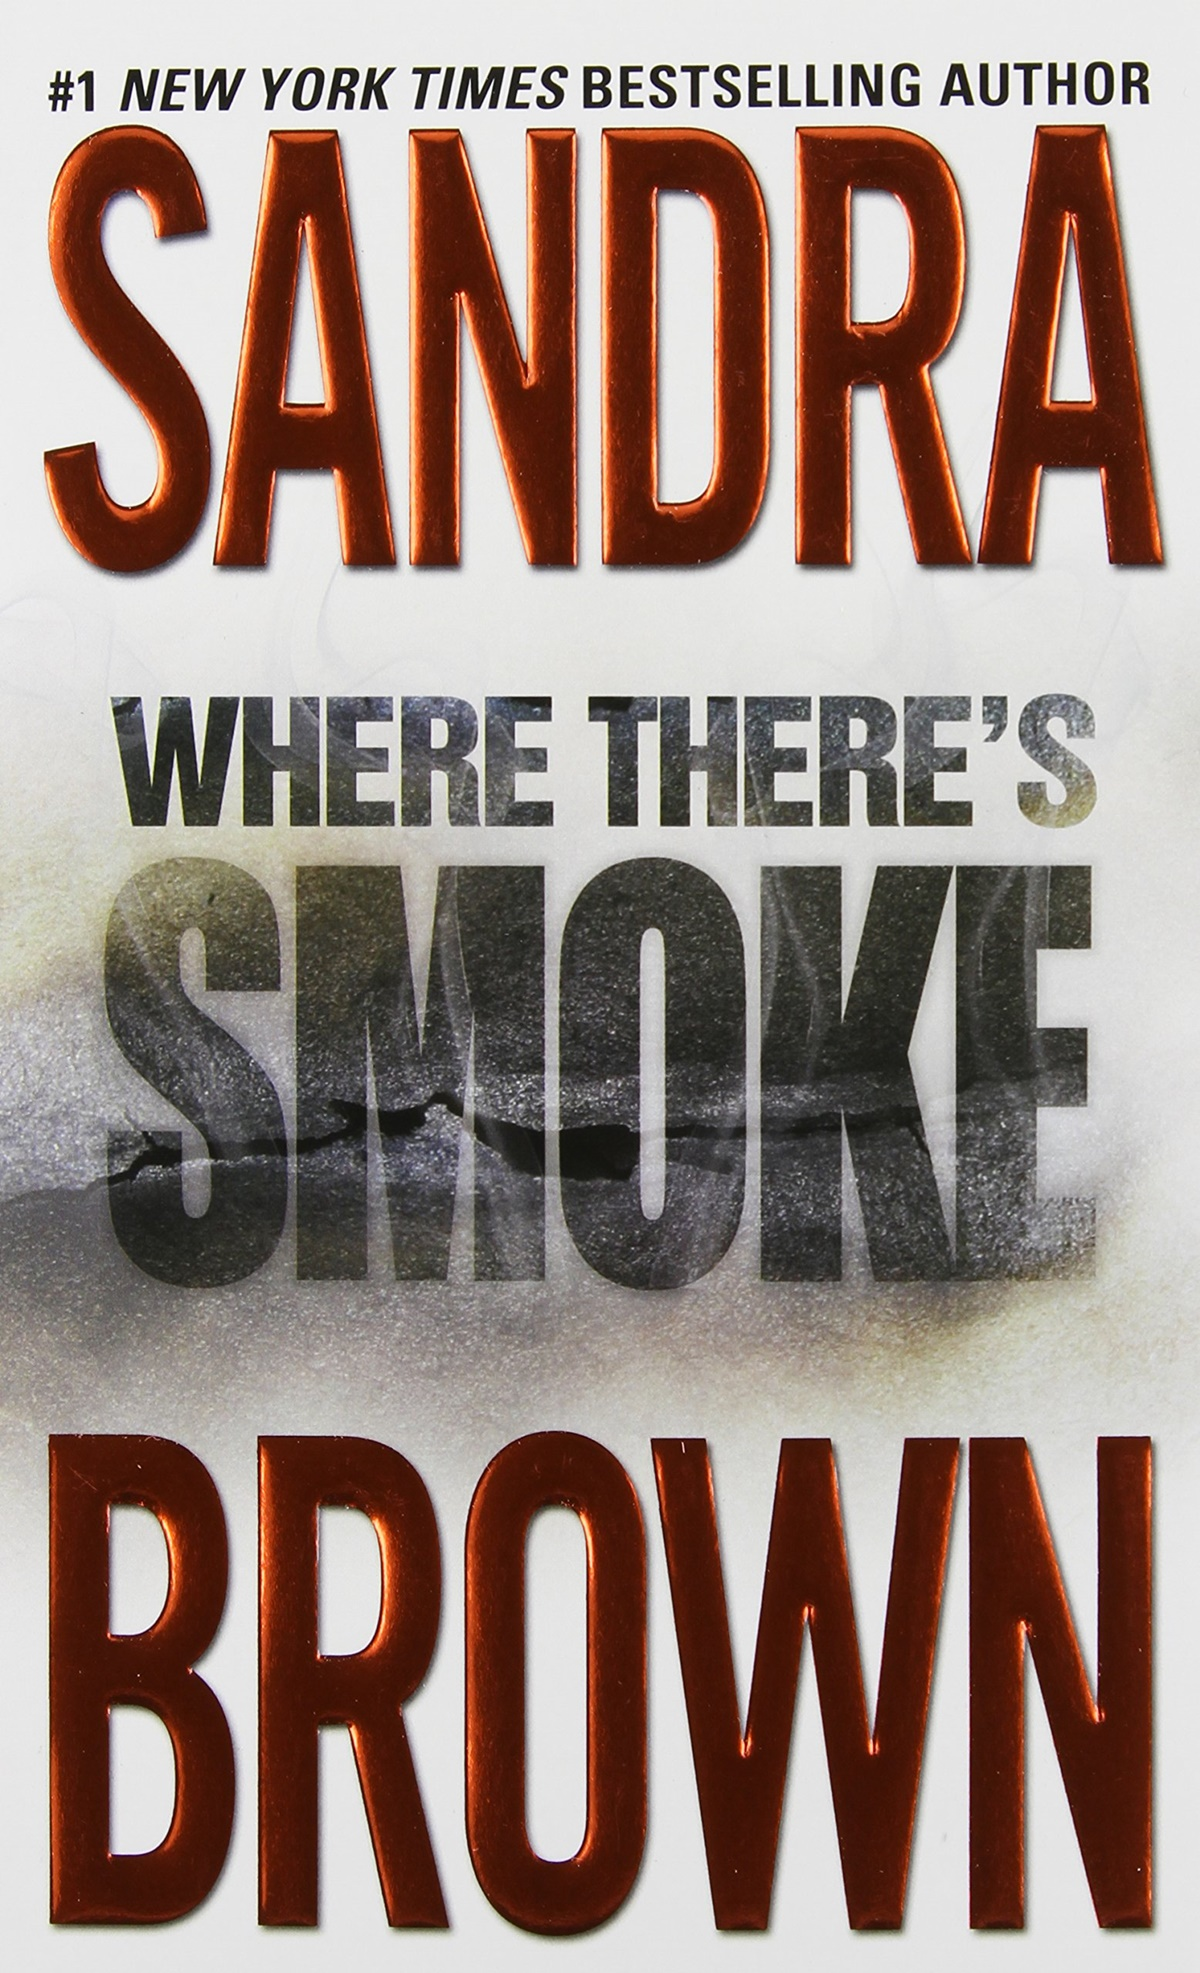 Sandra Brown Books, the cover of Where There's Smoke by Sandra Brown, books